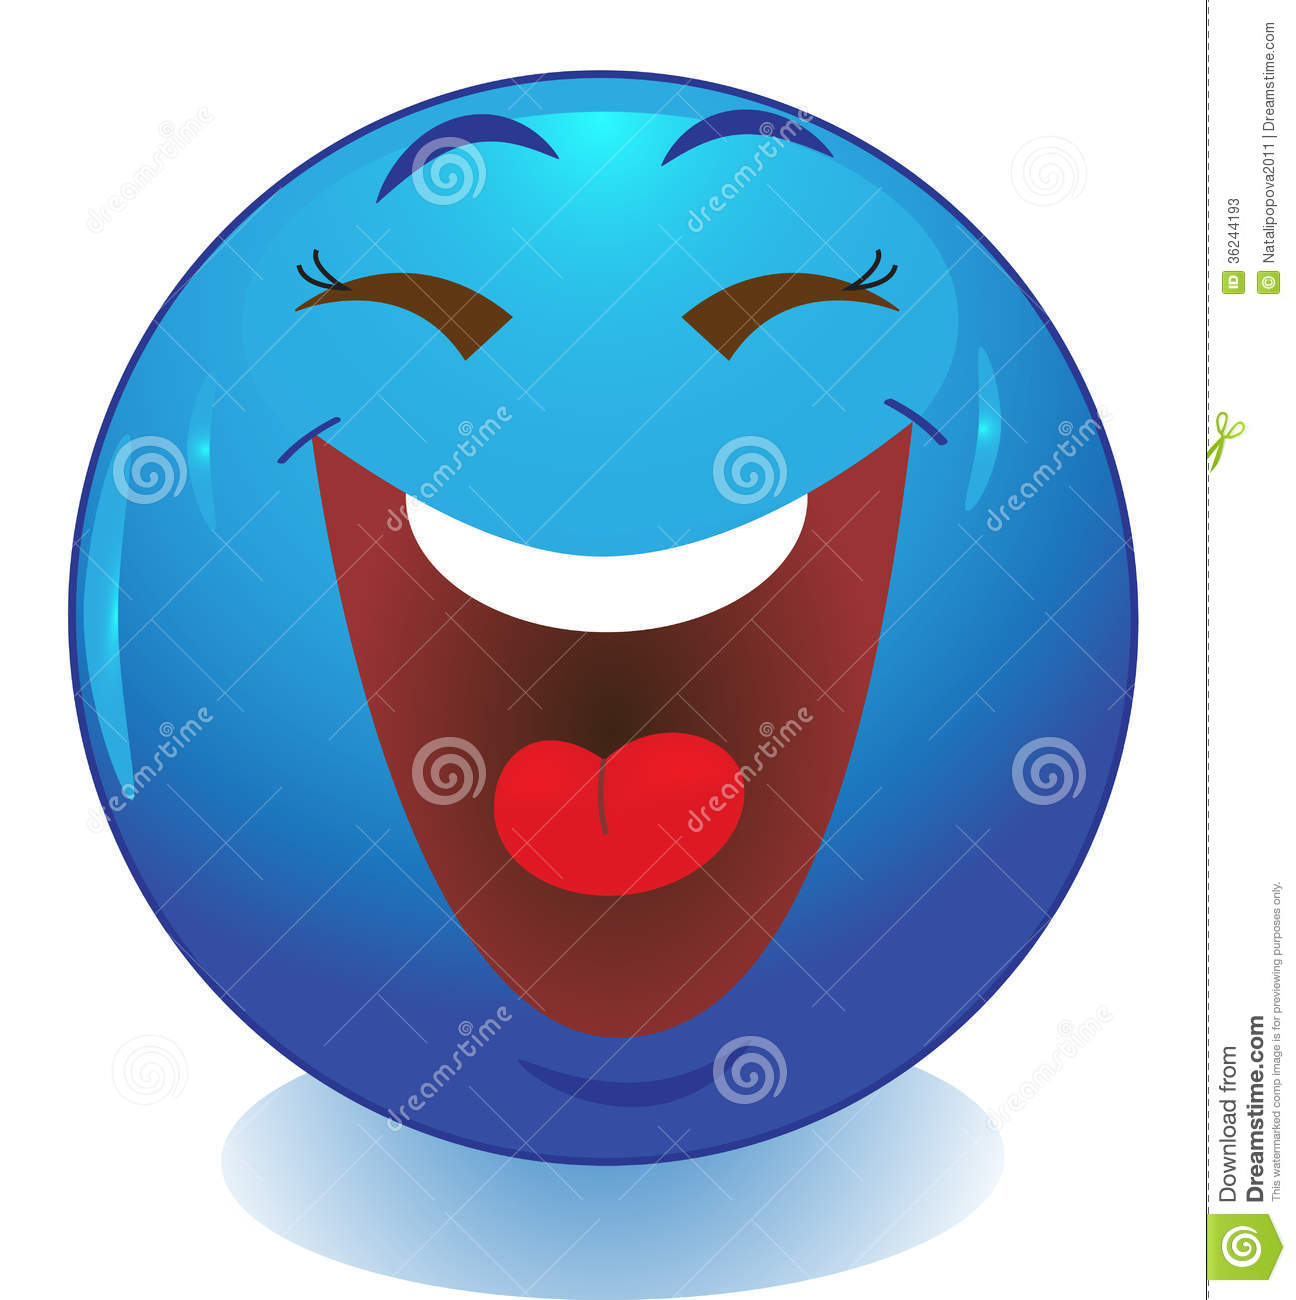 Laughing Smiley Face Clip Art Smiley Face Emoticon Stock Image